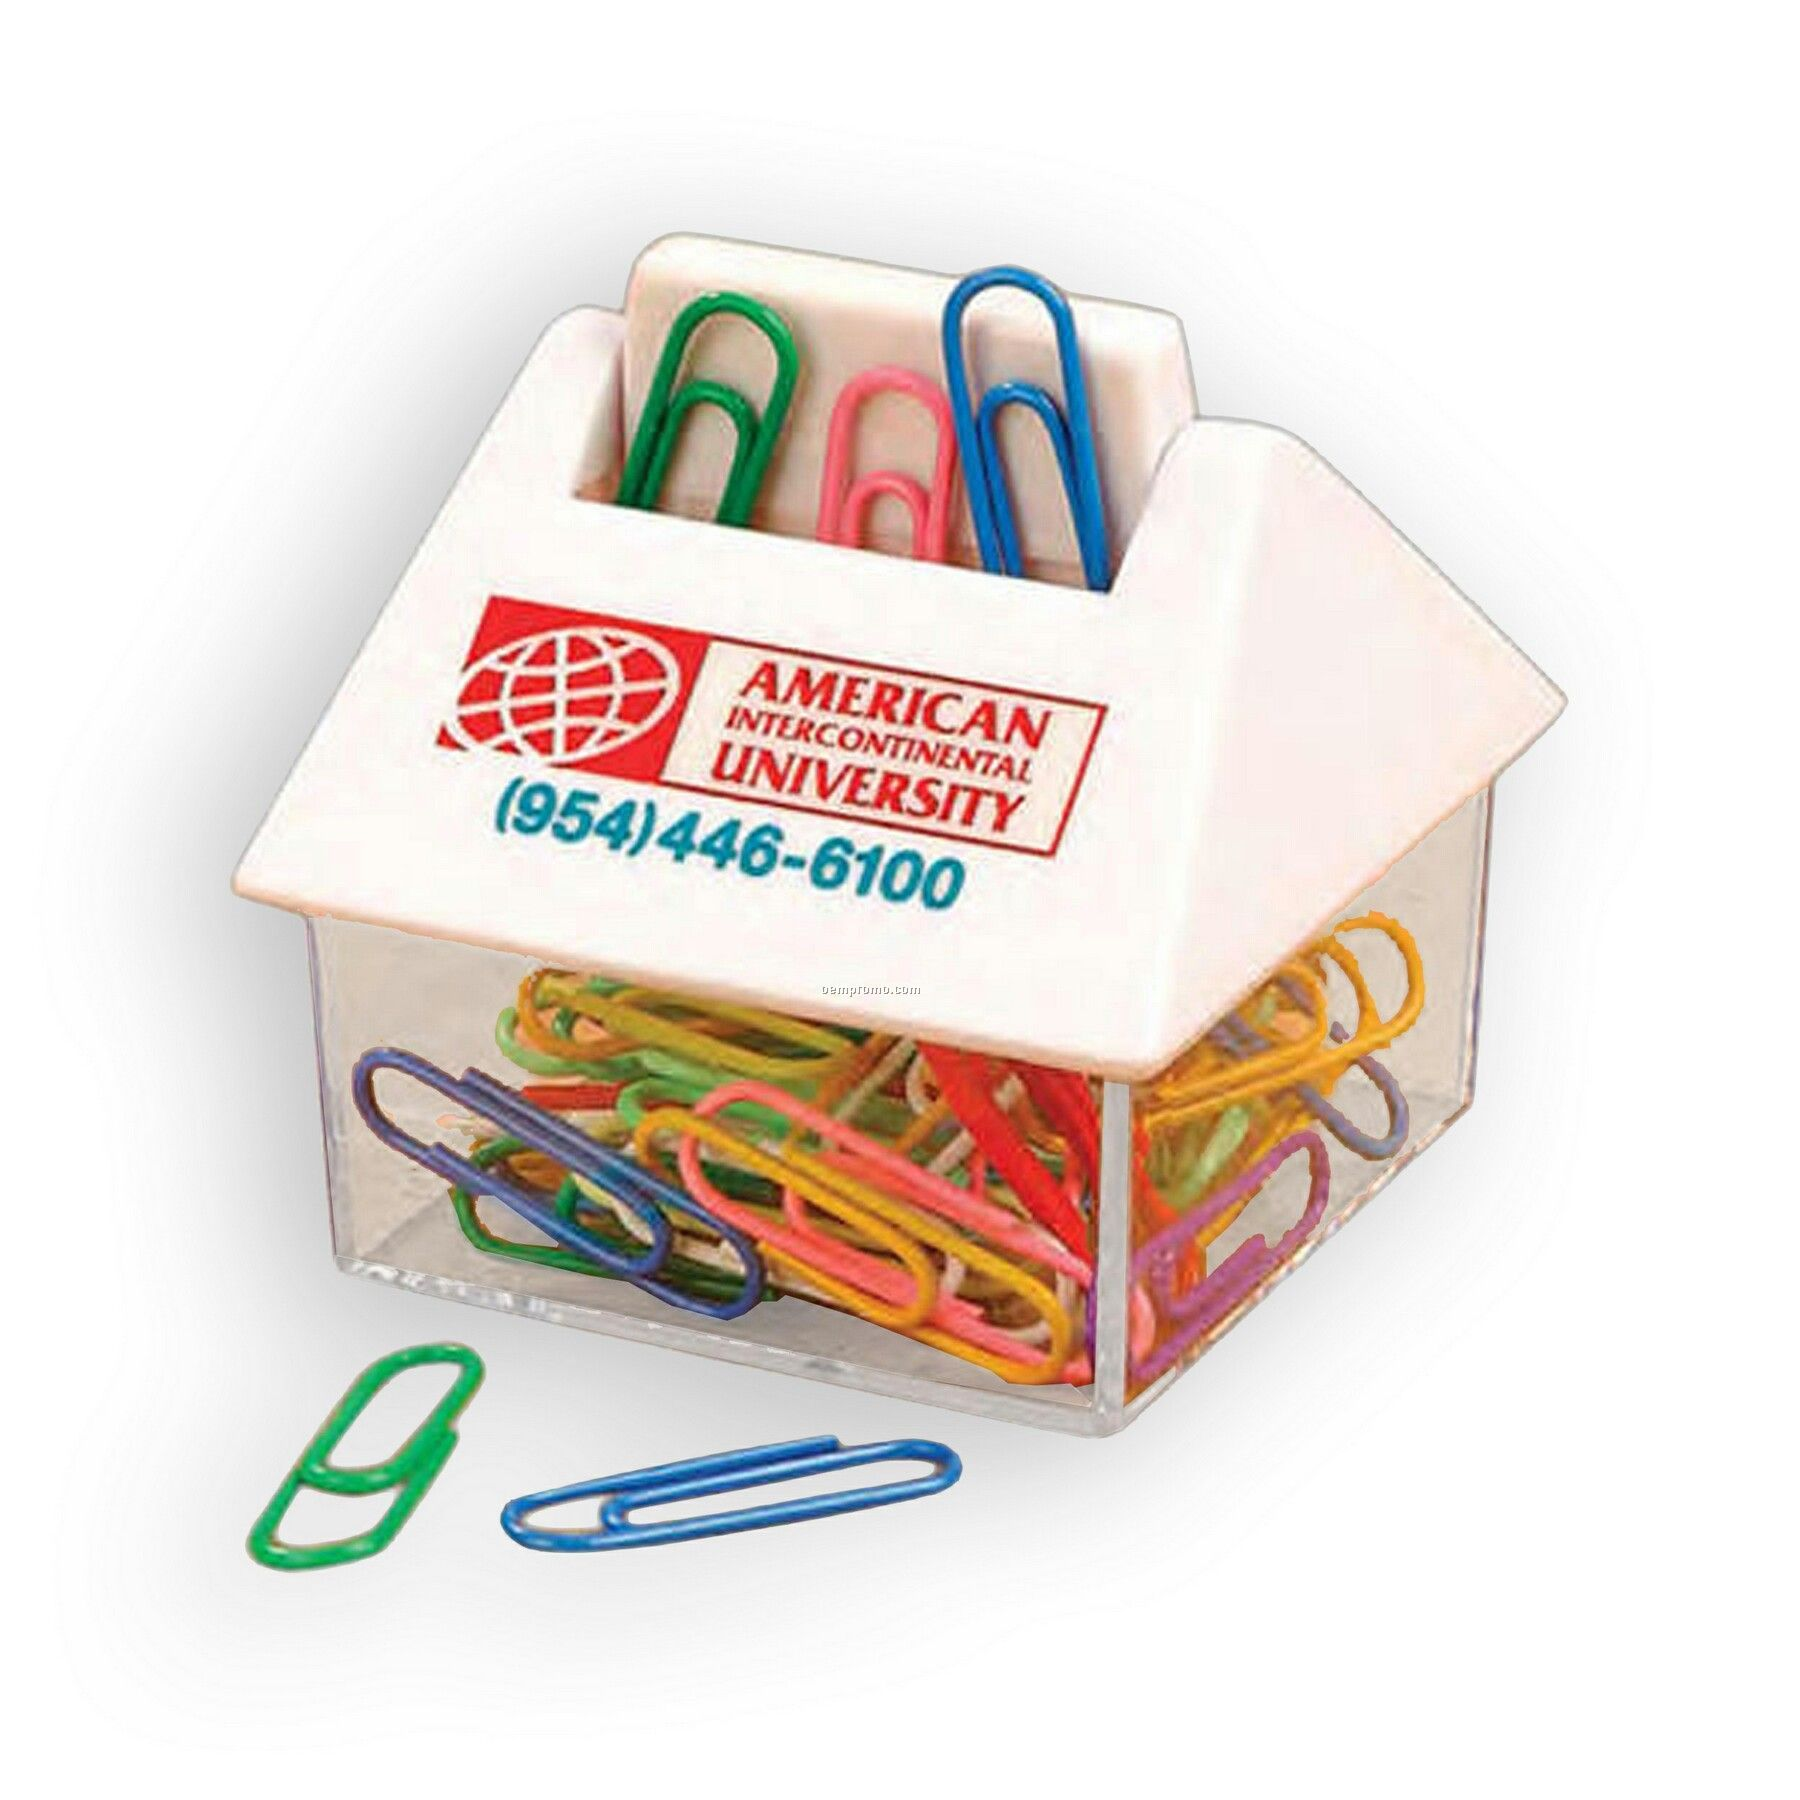 paper clip holder Organizing your cluttered desk doesn't have to be a chore—liven up your office space when some quirky and colorful paper clips these delightful items will make.